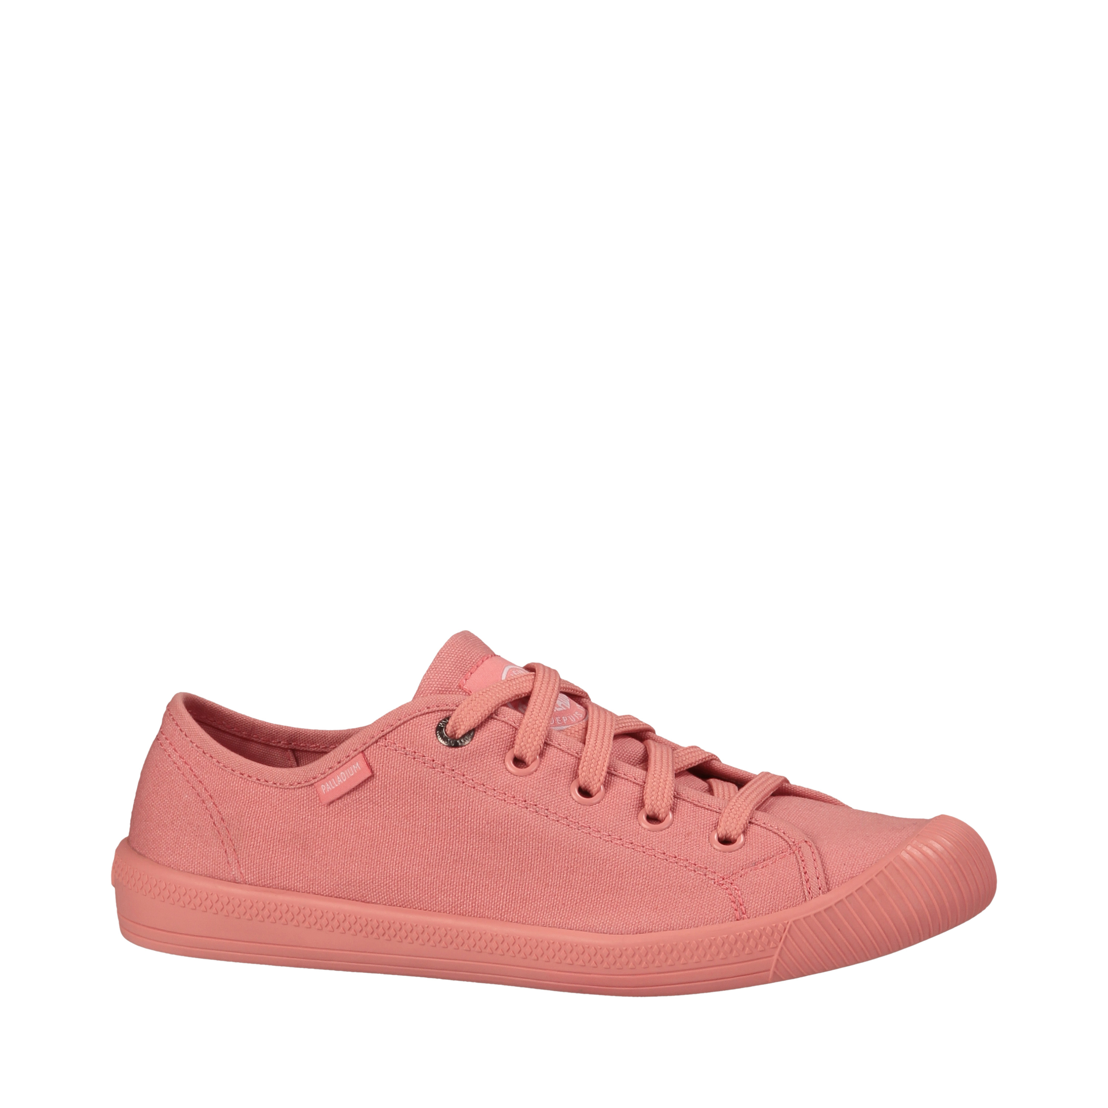 Palladium_Women Flex Lace M - 49.95 euro